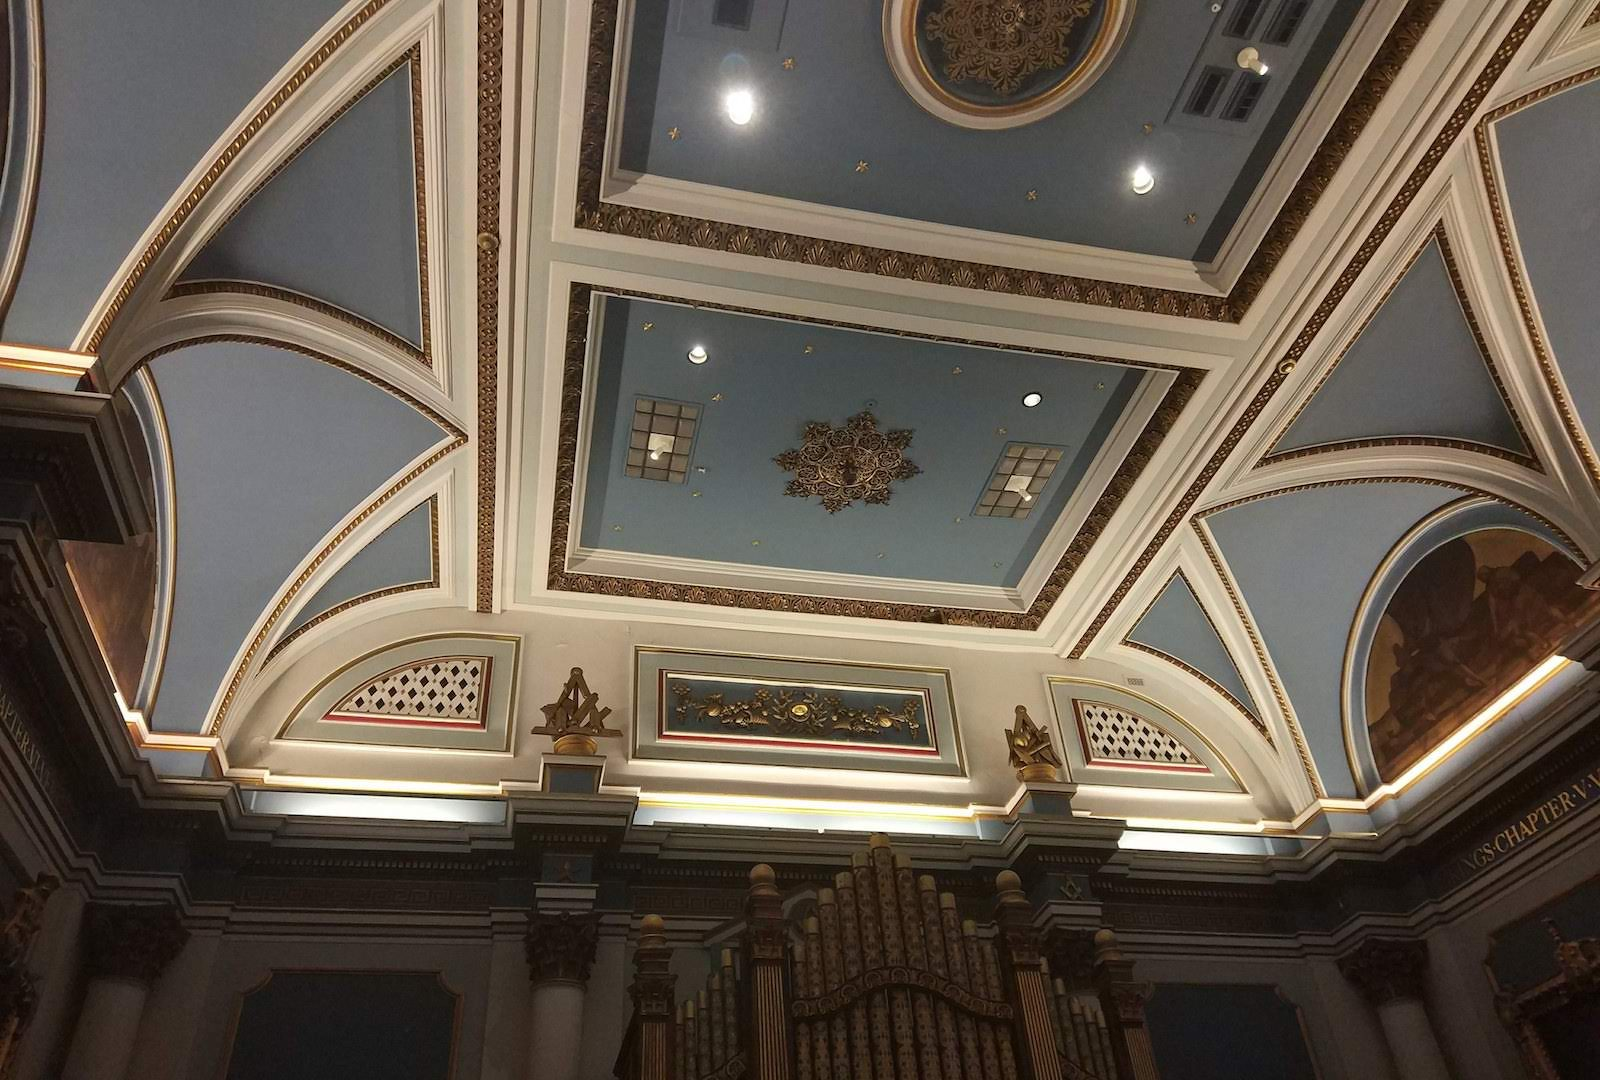 Culture Night Dublin 2018: Freemasons & Earthquakes in the Library